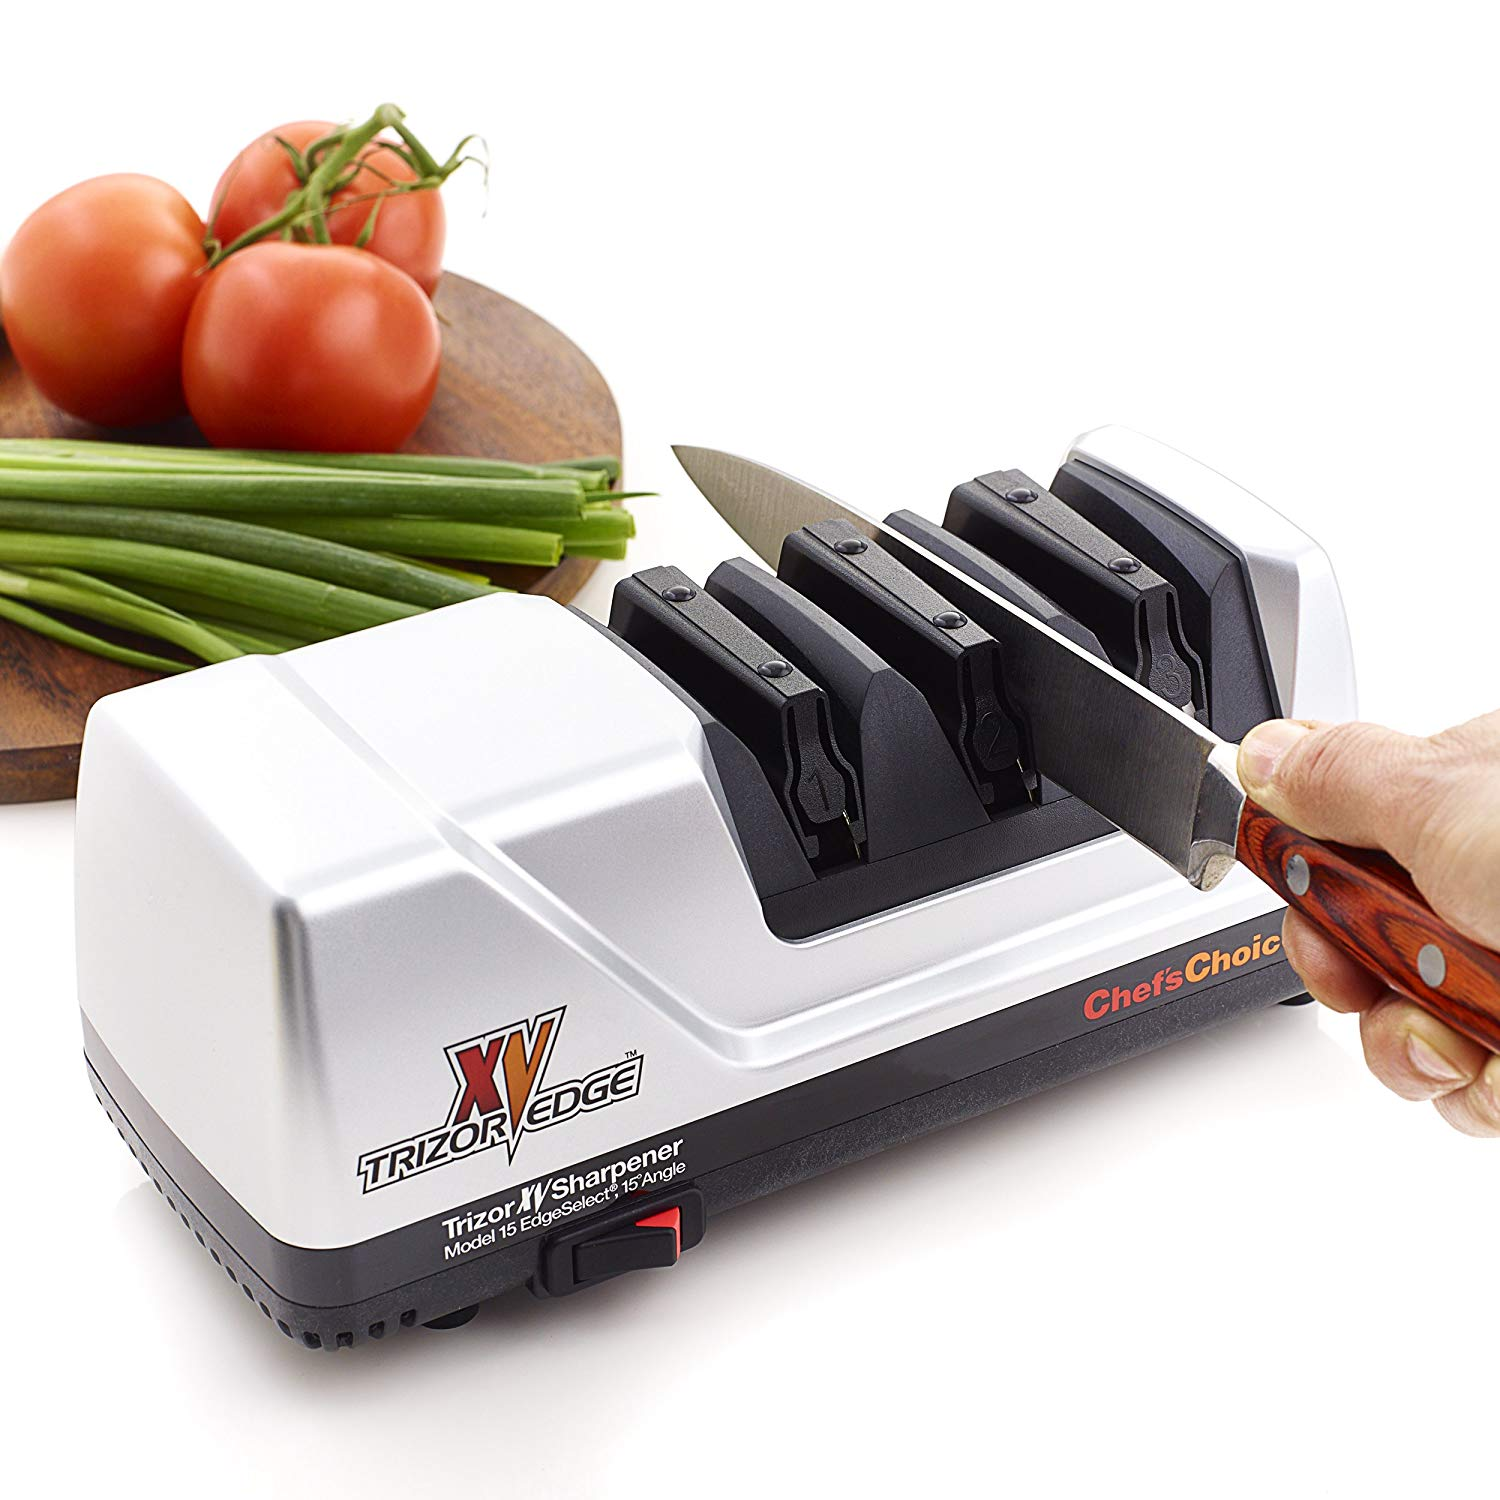 Chef's Choice 15 Trizor Knife Sharpener